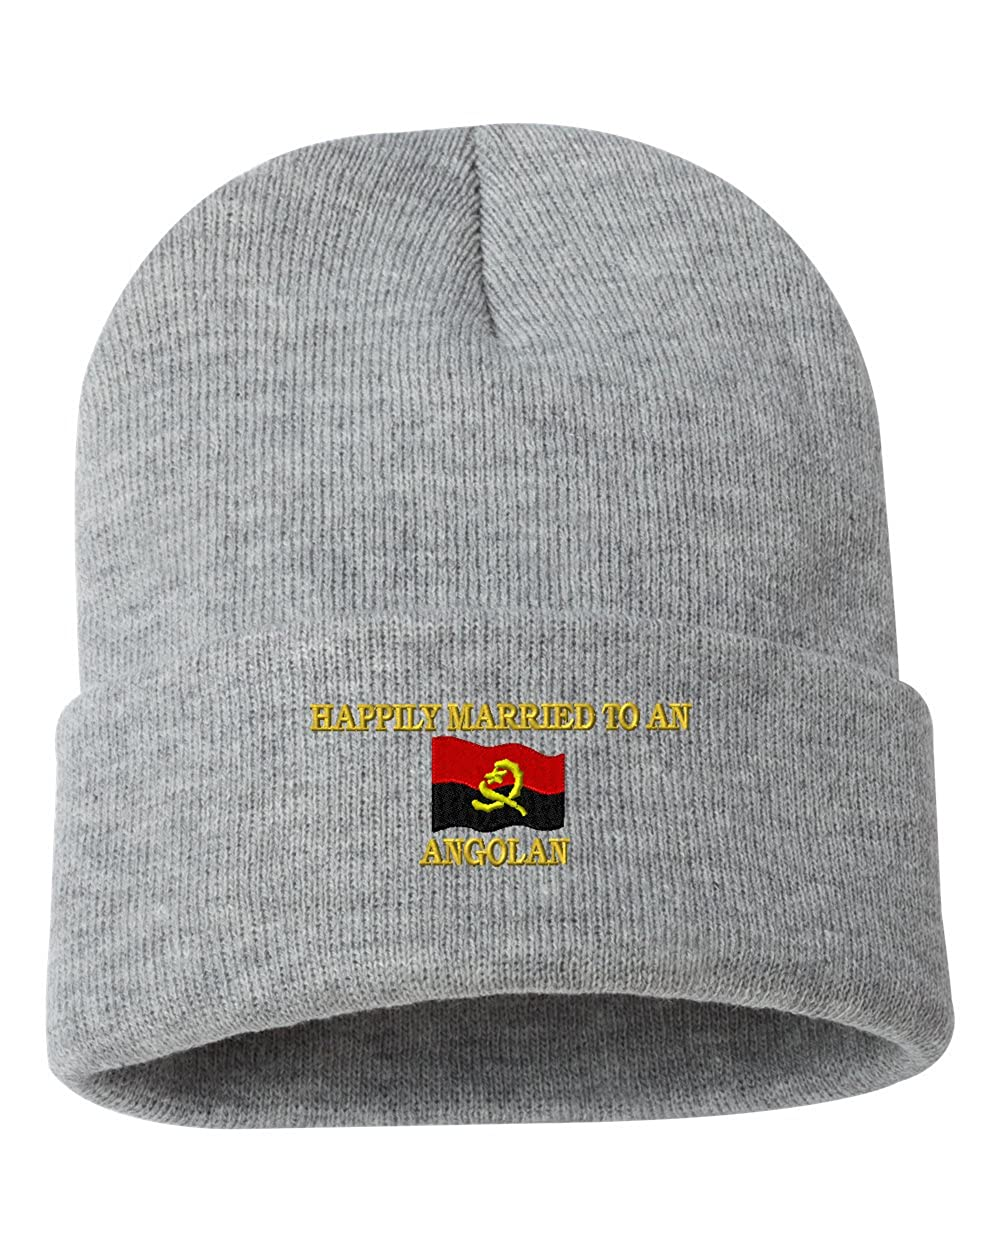 HAPPILY MARRIED TO AN ANGOLAN Custom Personalized Embroidery Embroidered Beanie